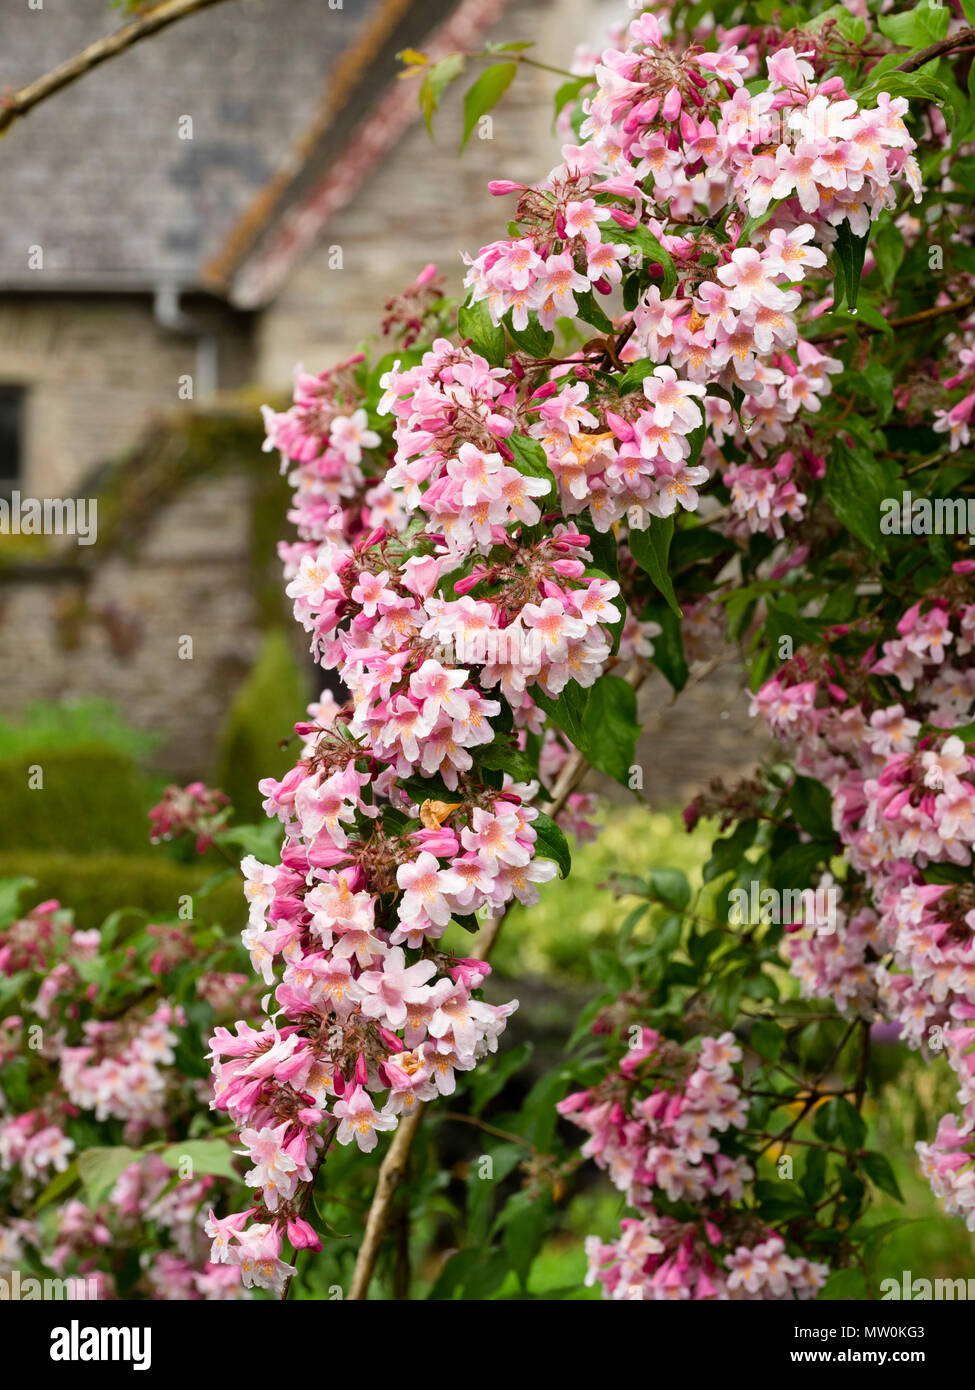 Arching growth weighed down by the pink flowers of the early summer arching growth weighed down by the pink flowers of the early summer blooming beauty bush kolkwitzia amabilis pink cloud mightylinksfo